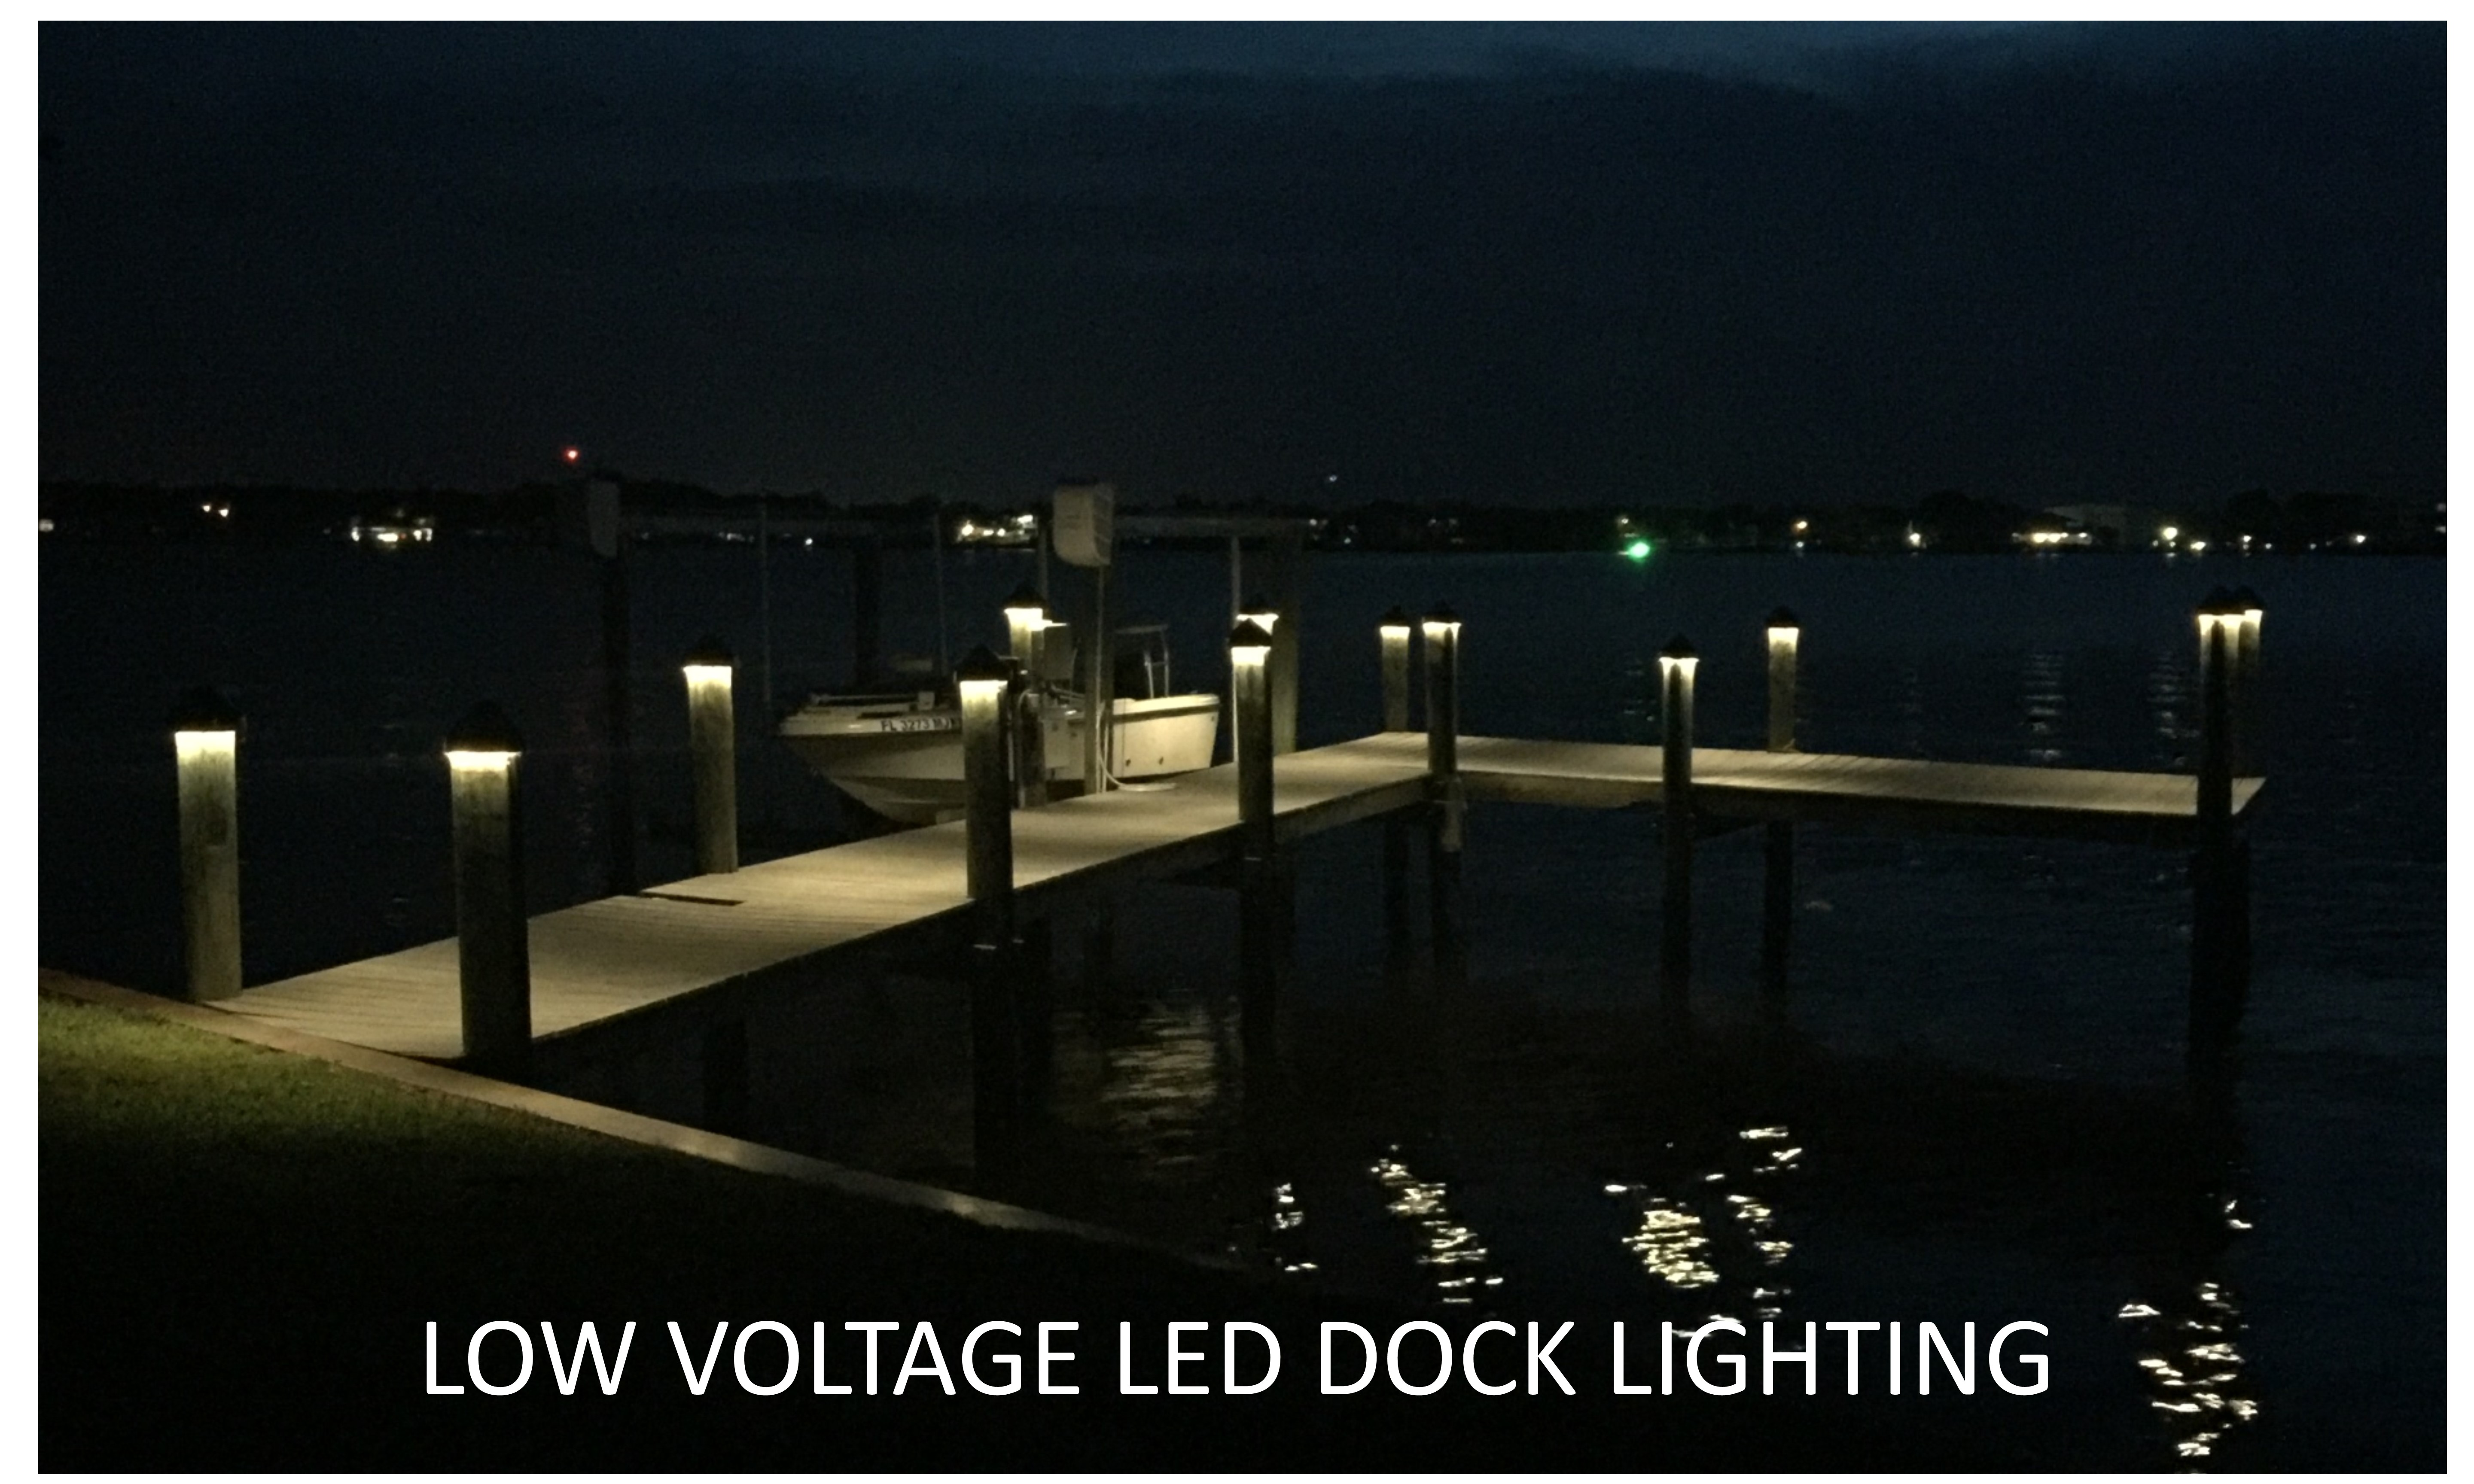 This is a photo of a dock lighted using low voltage LED dock lights.